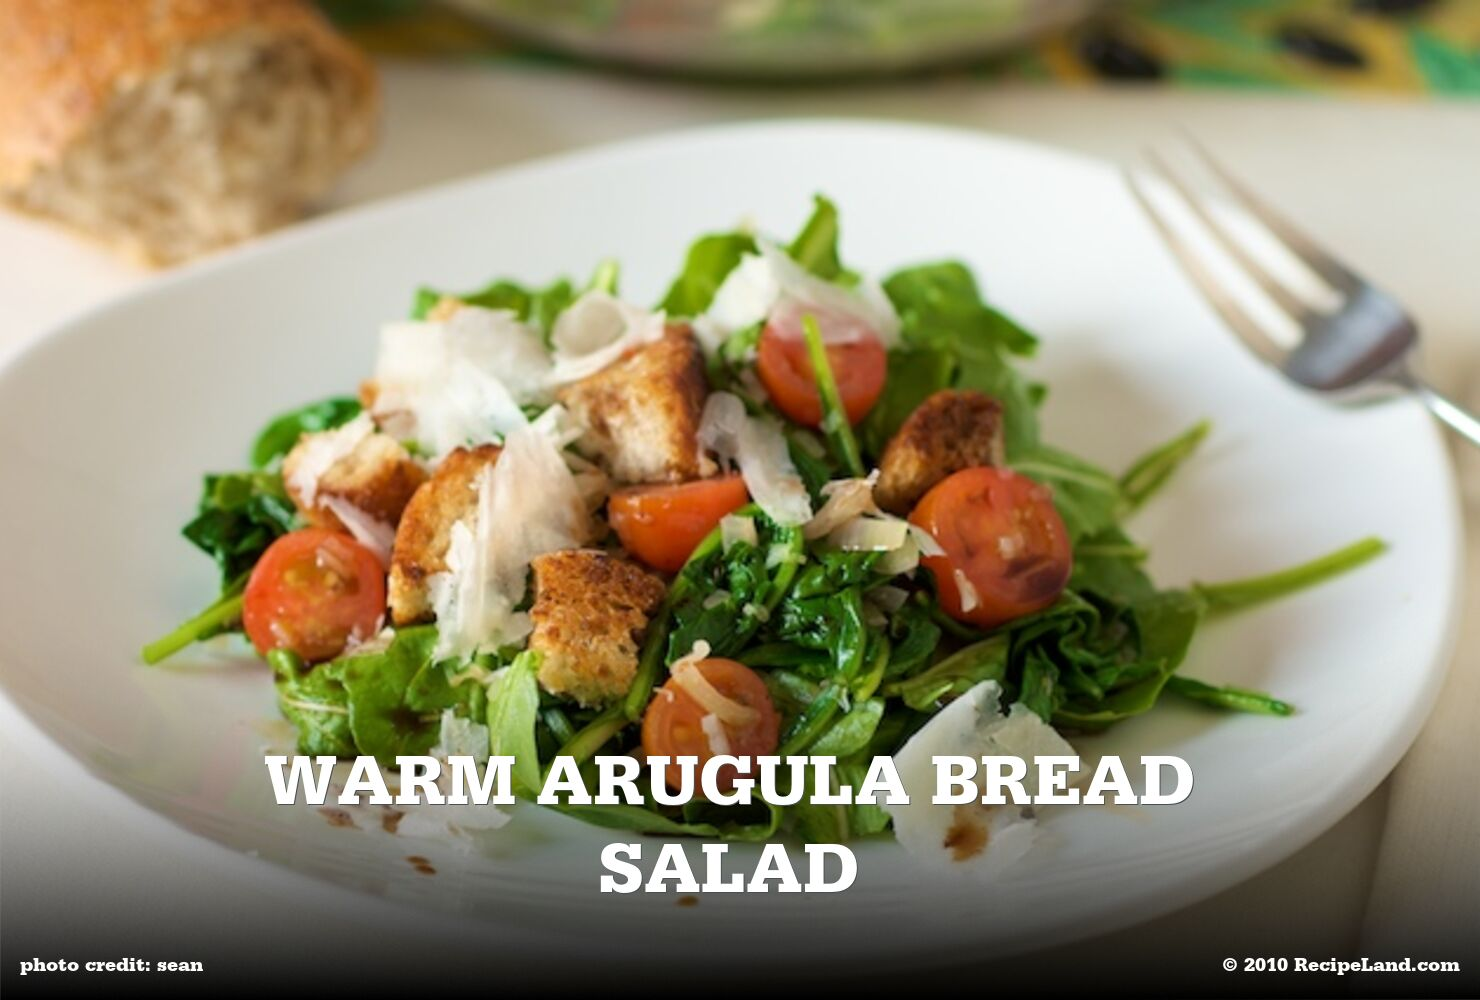 Warm Arugula Bread Salad